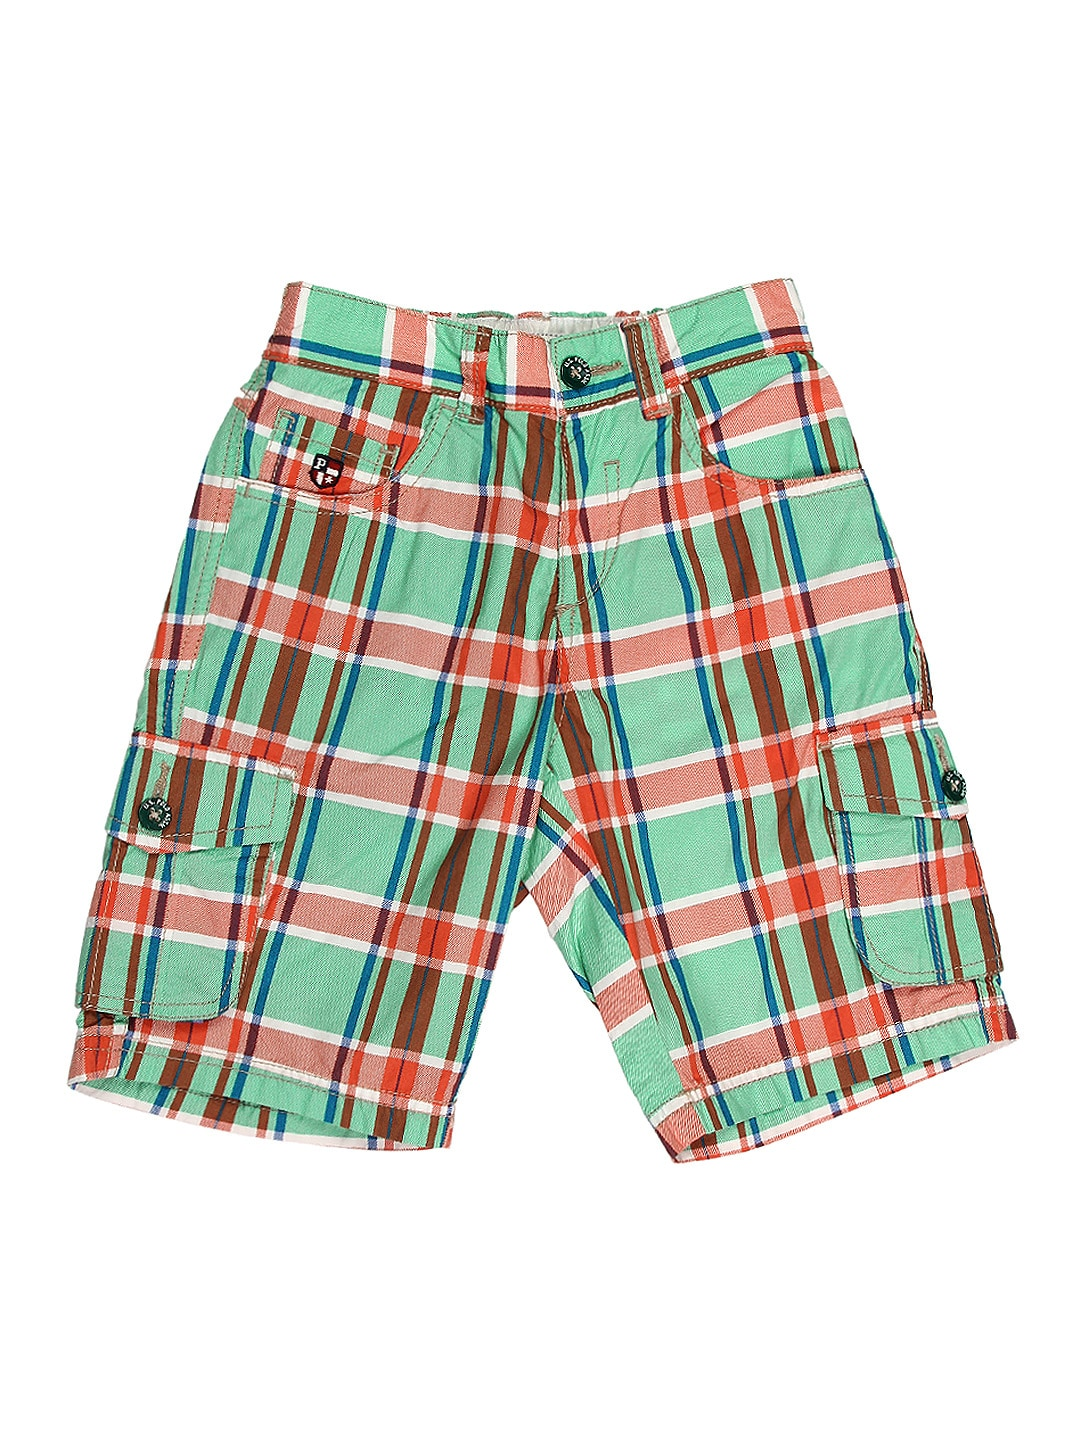 U.S. Polo Assn. Kids Boys Green & Orange Checked Shorts